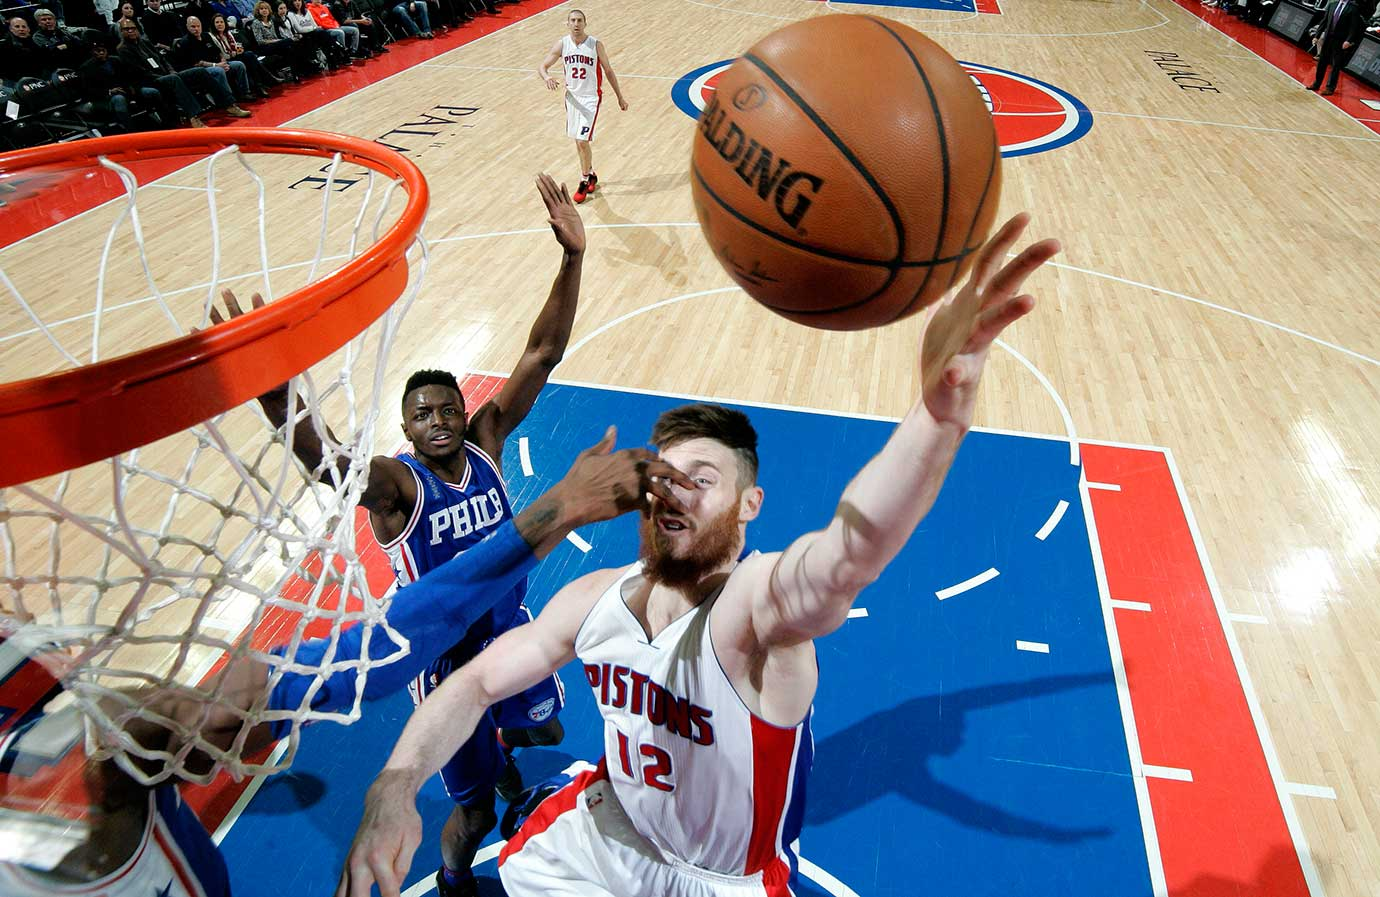 Aron Baynes of the Detroit Pistons appears to get poked in the face while shooting against Philadelphia.